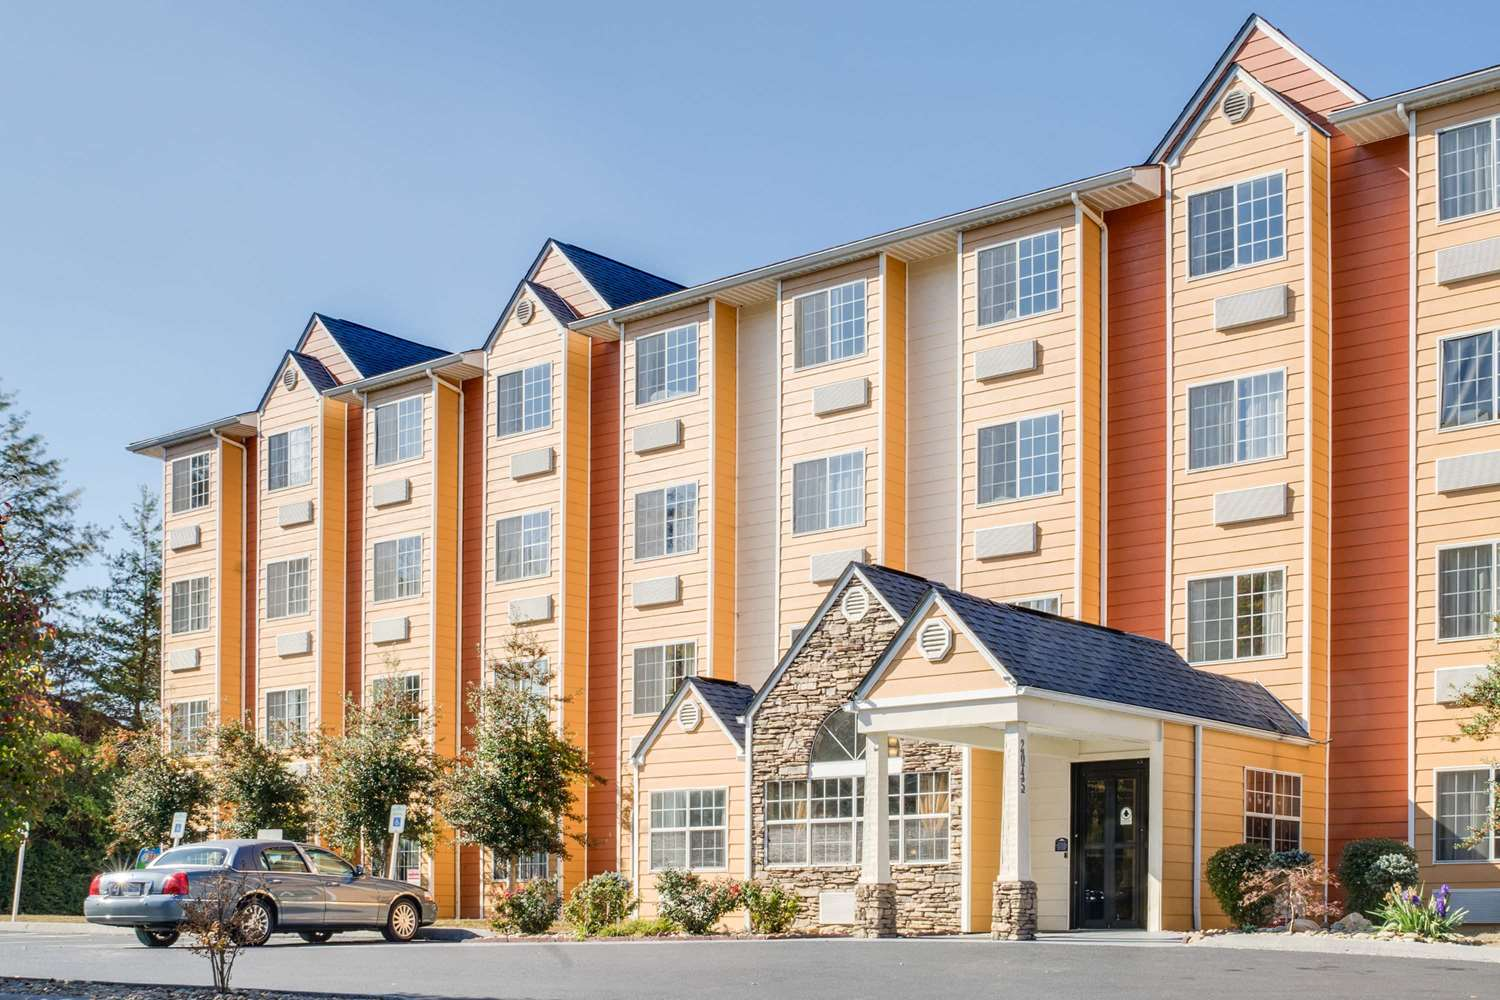 Hotels Near Tanger Outlet Mall In Pigeon Forge Tn